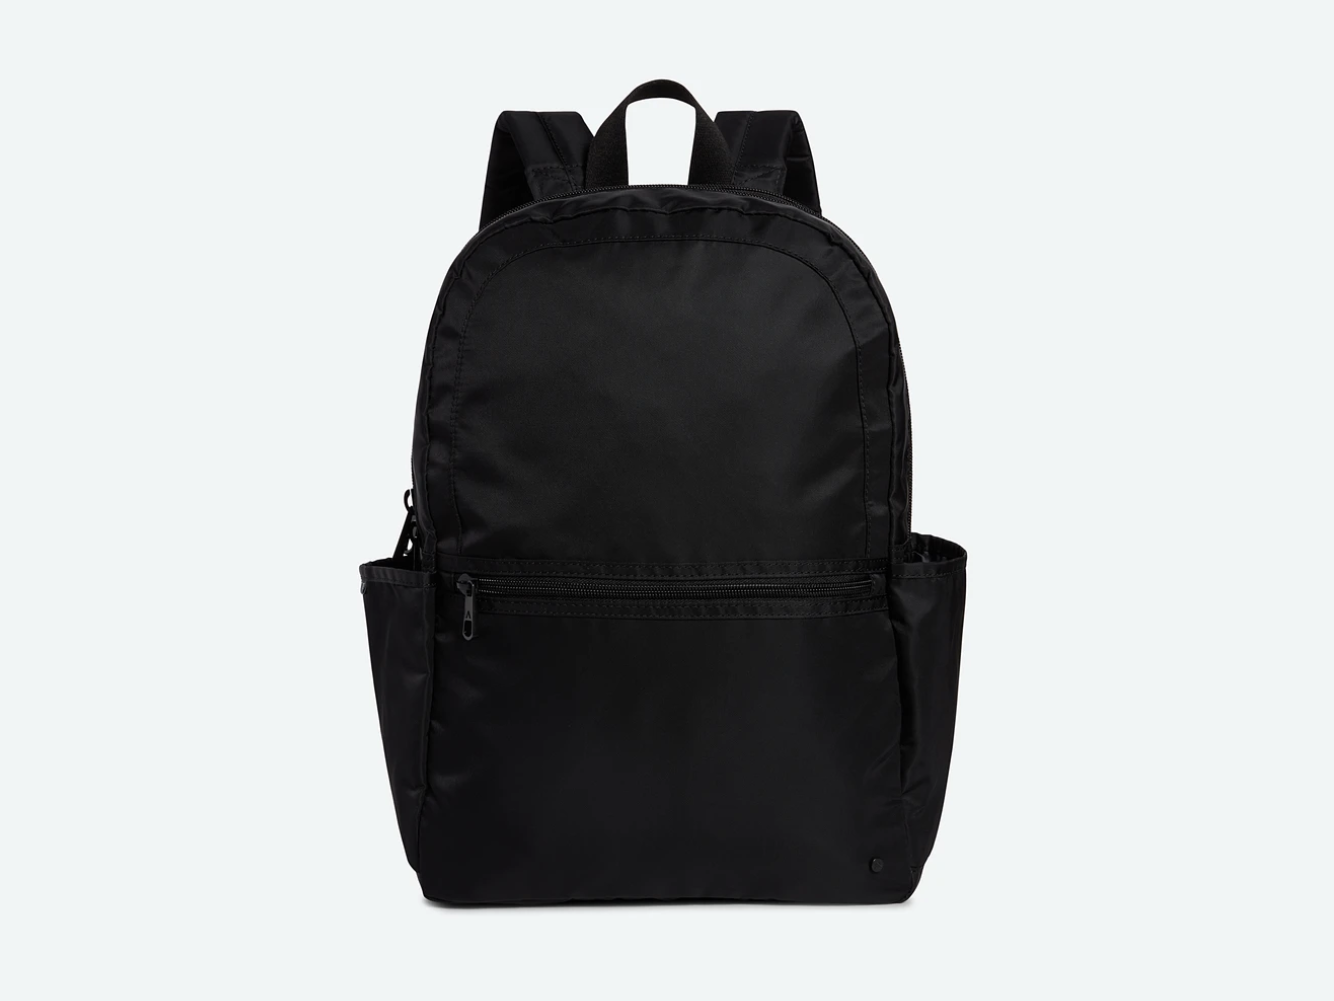 STATE Bags Kane Double Pocket Backpack